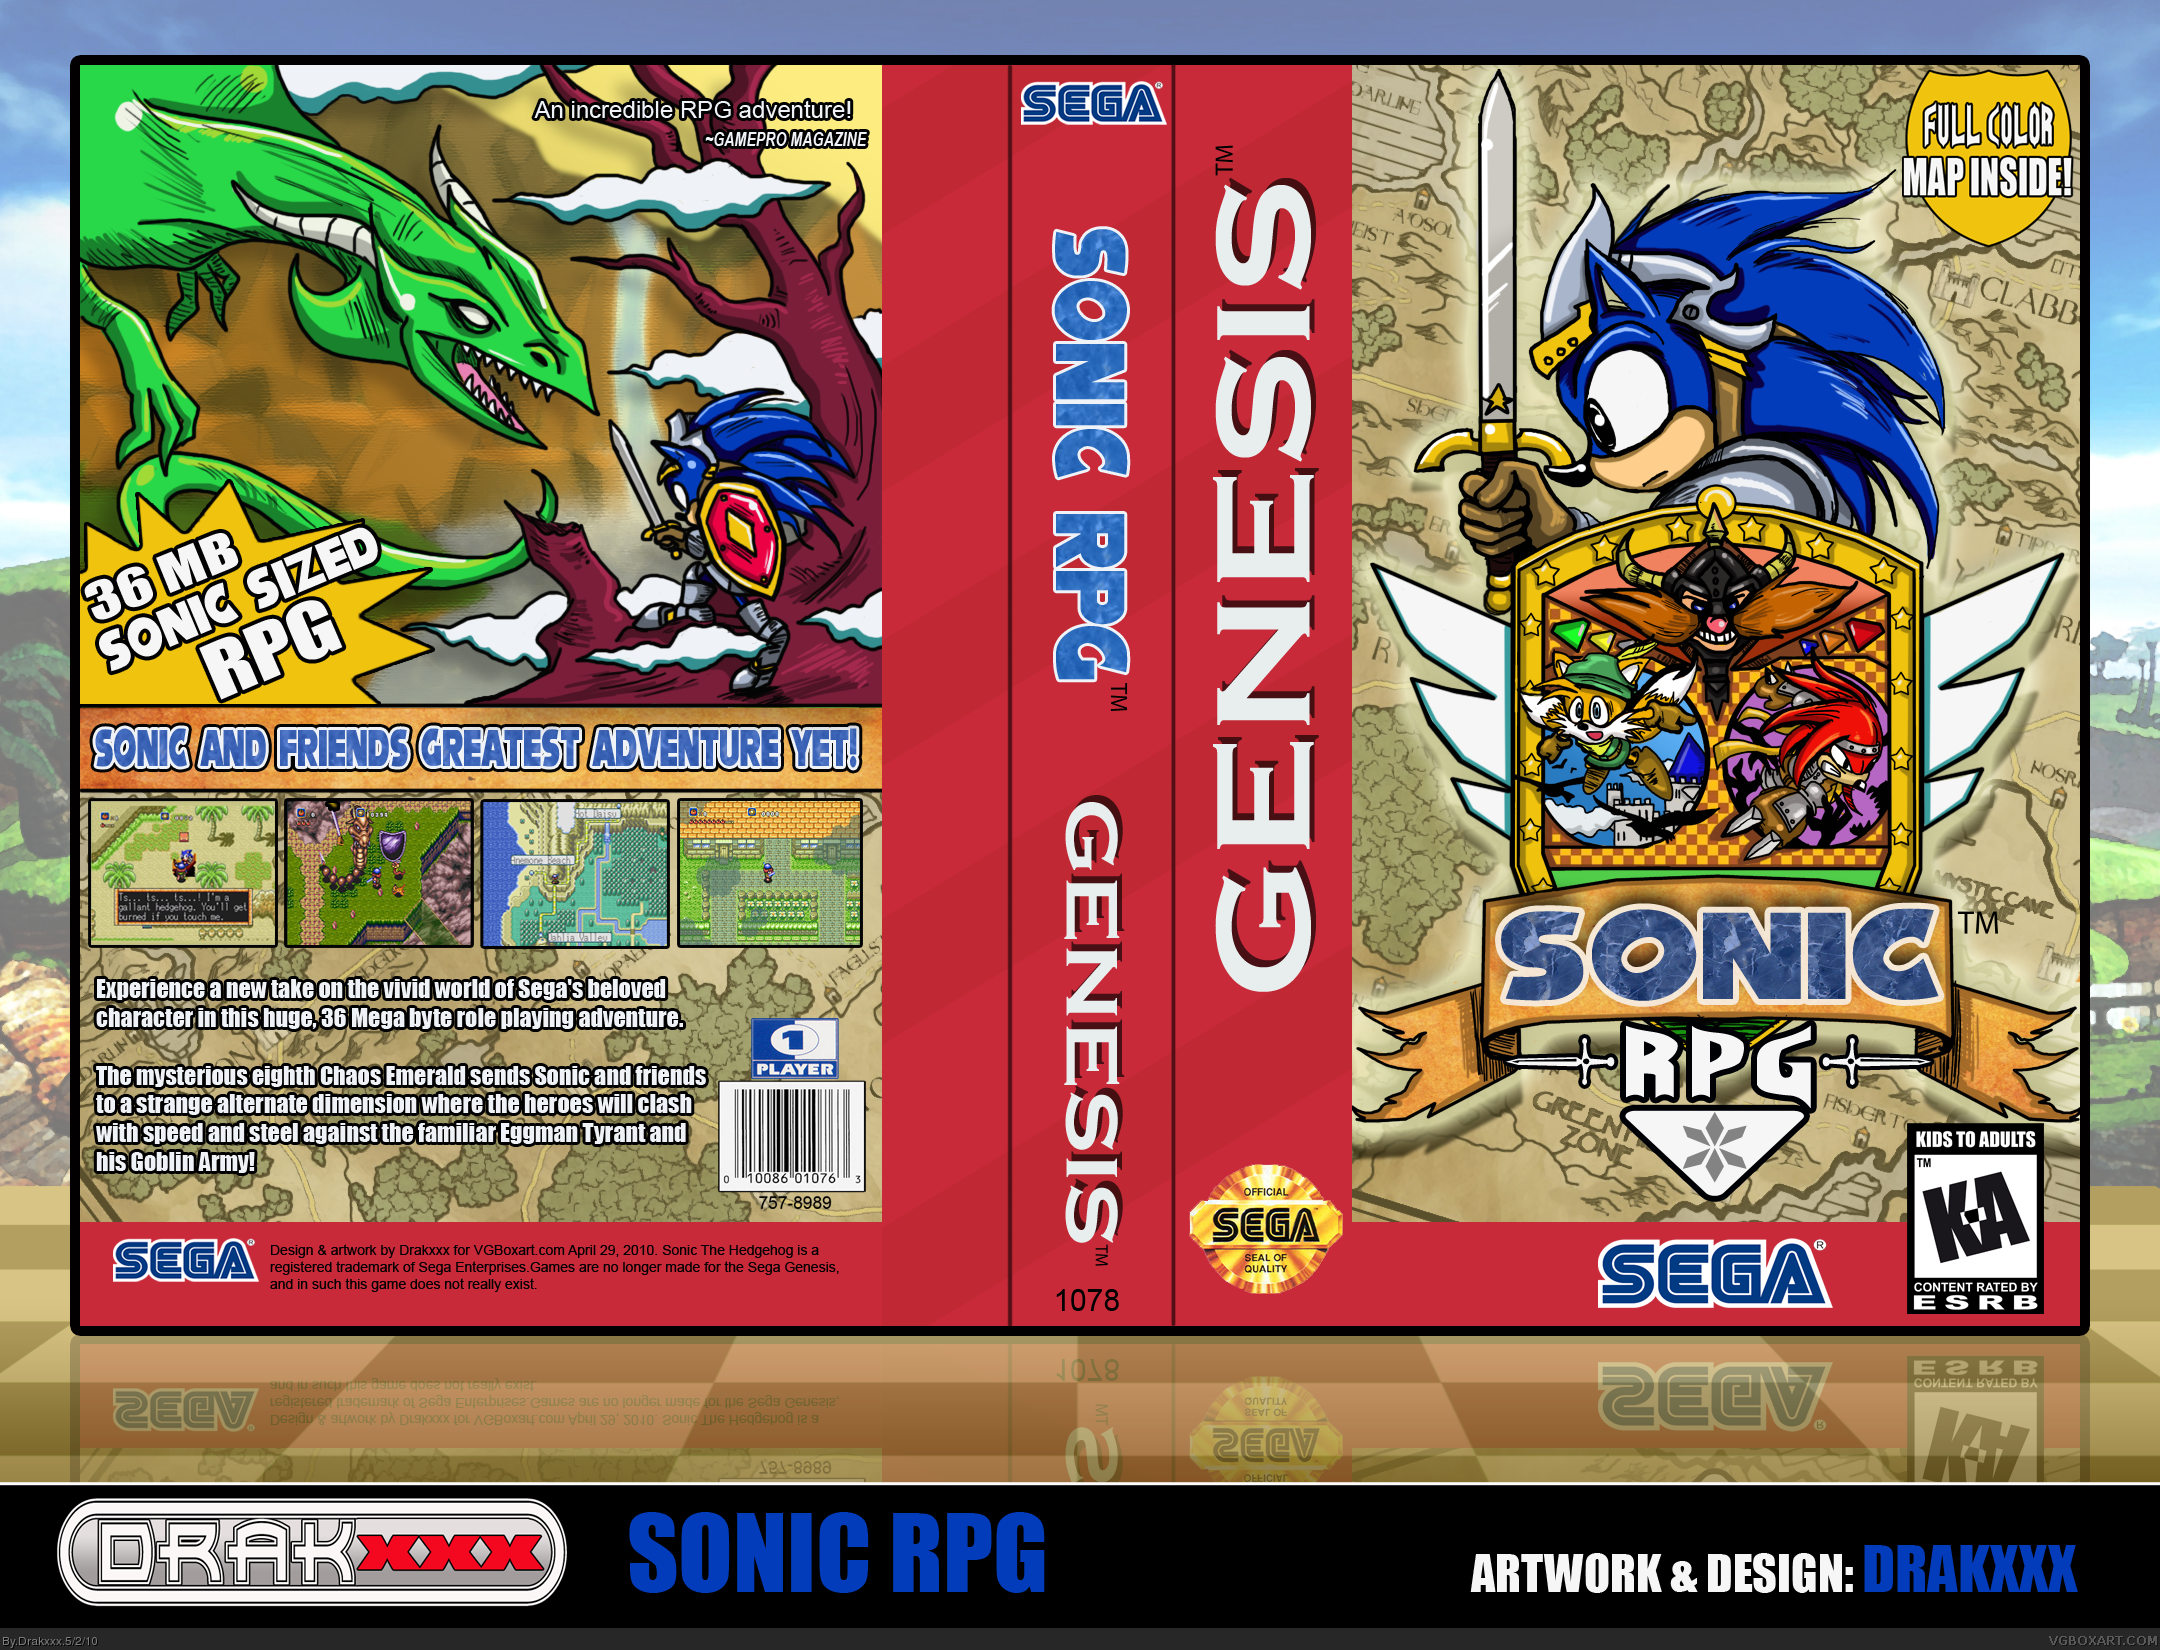 Sonic RPG box cover